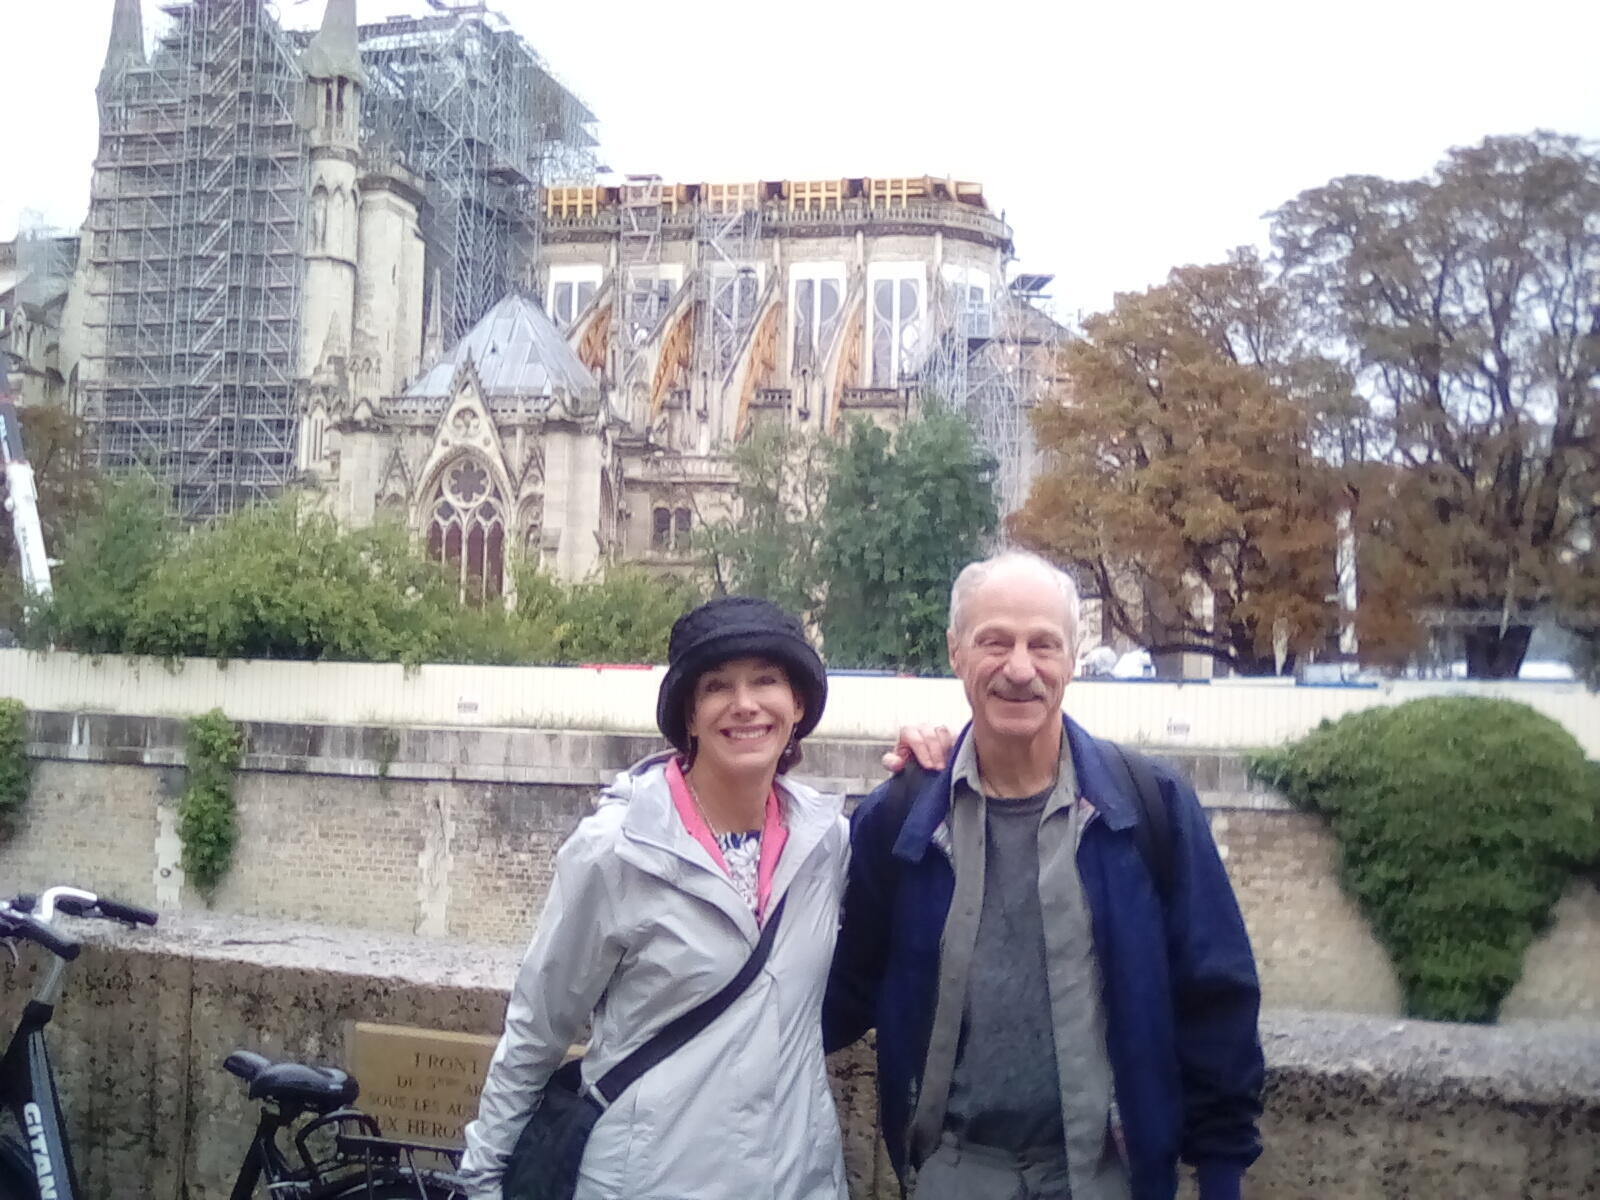 """Paula and Steven Allbright from the US are """"devastated by the damage done to Notre Dame"""" but undeterred by talk of lead poisoning"""